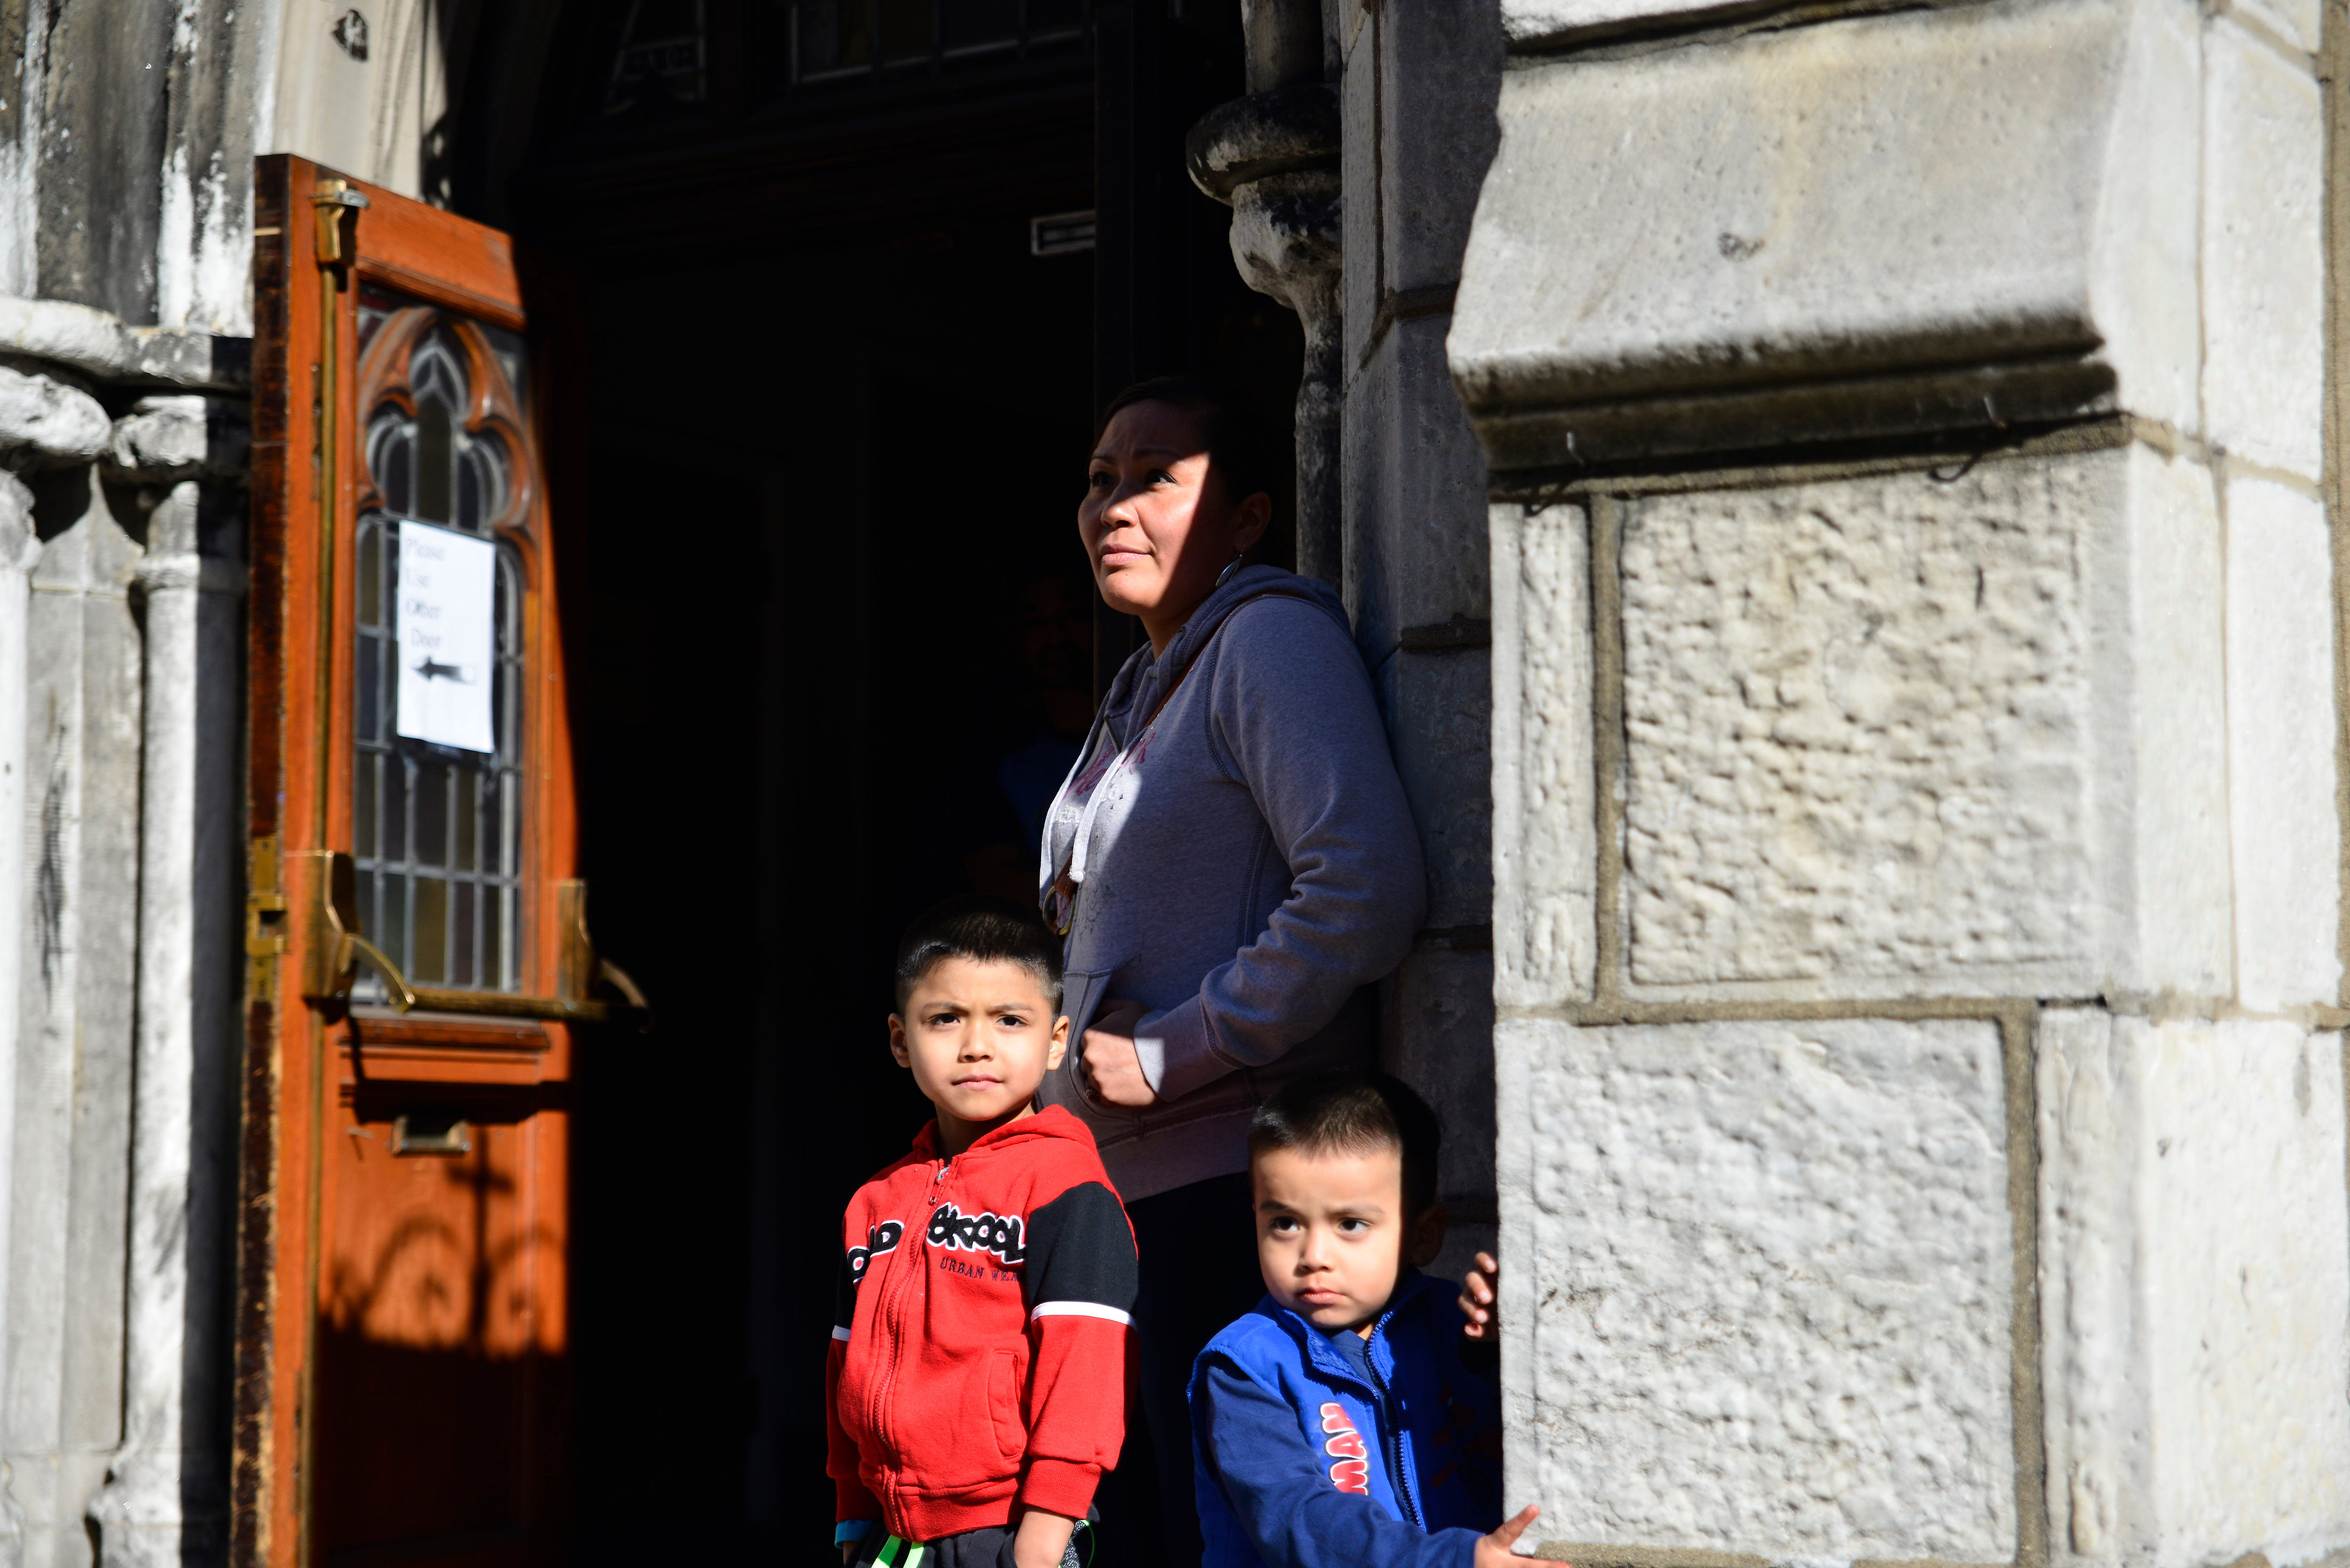 A woman and two young children stand in the doorway of a church.